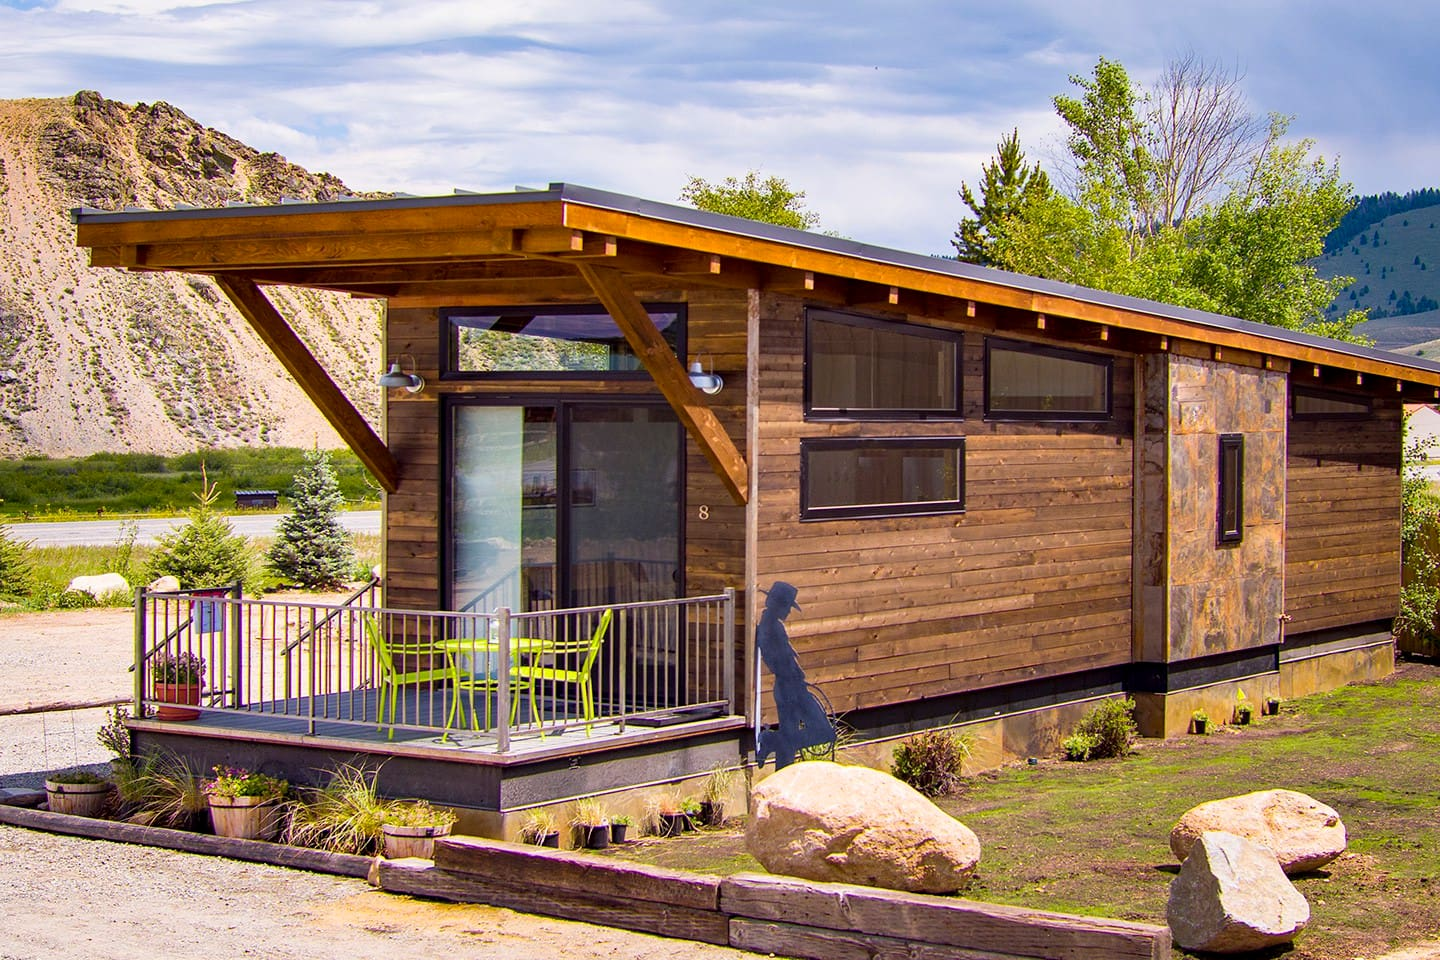 Rustic yet modern, 400 sq ft of living space, plus 100 sq ft deck